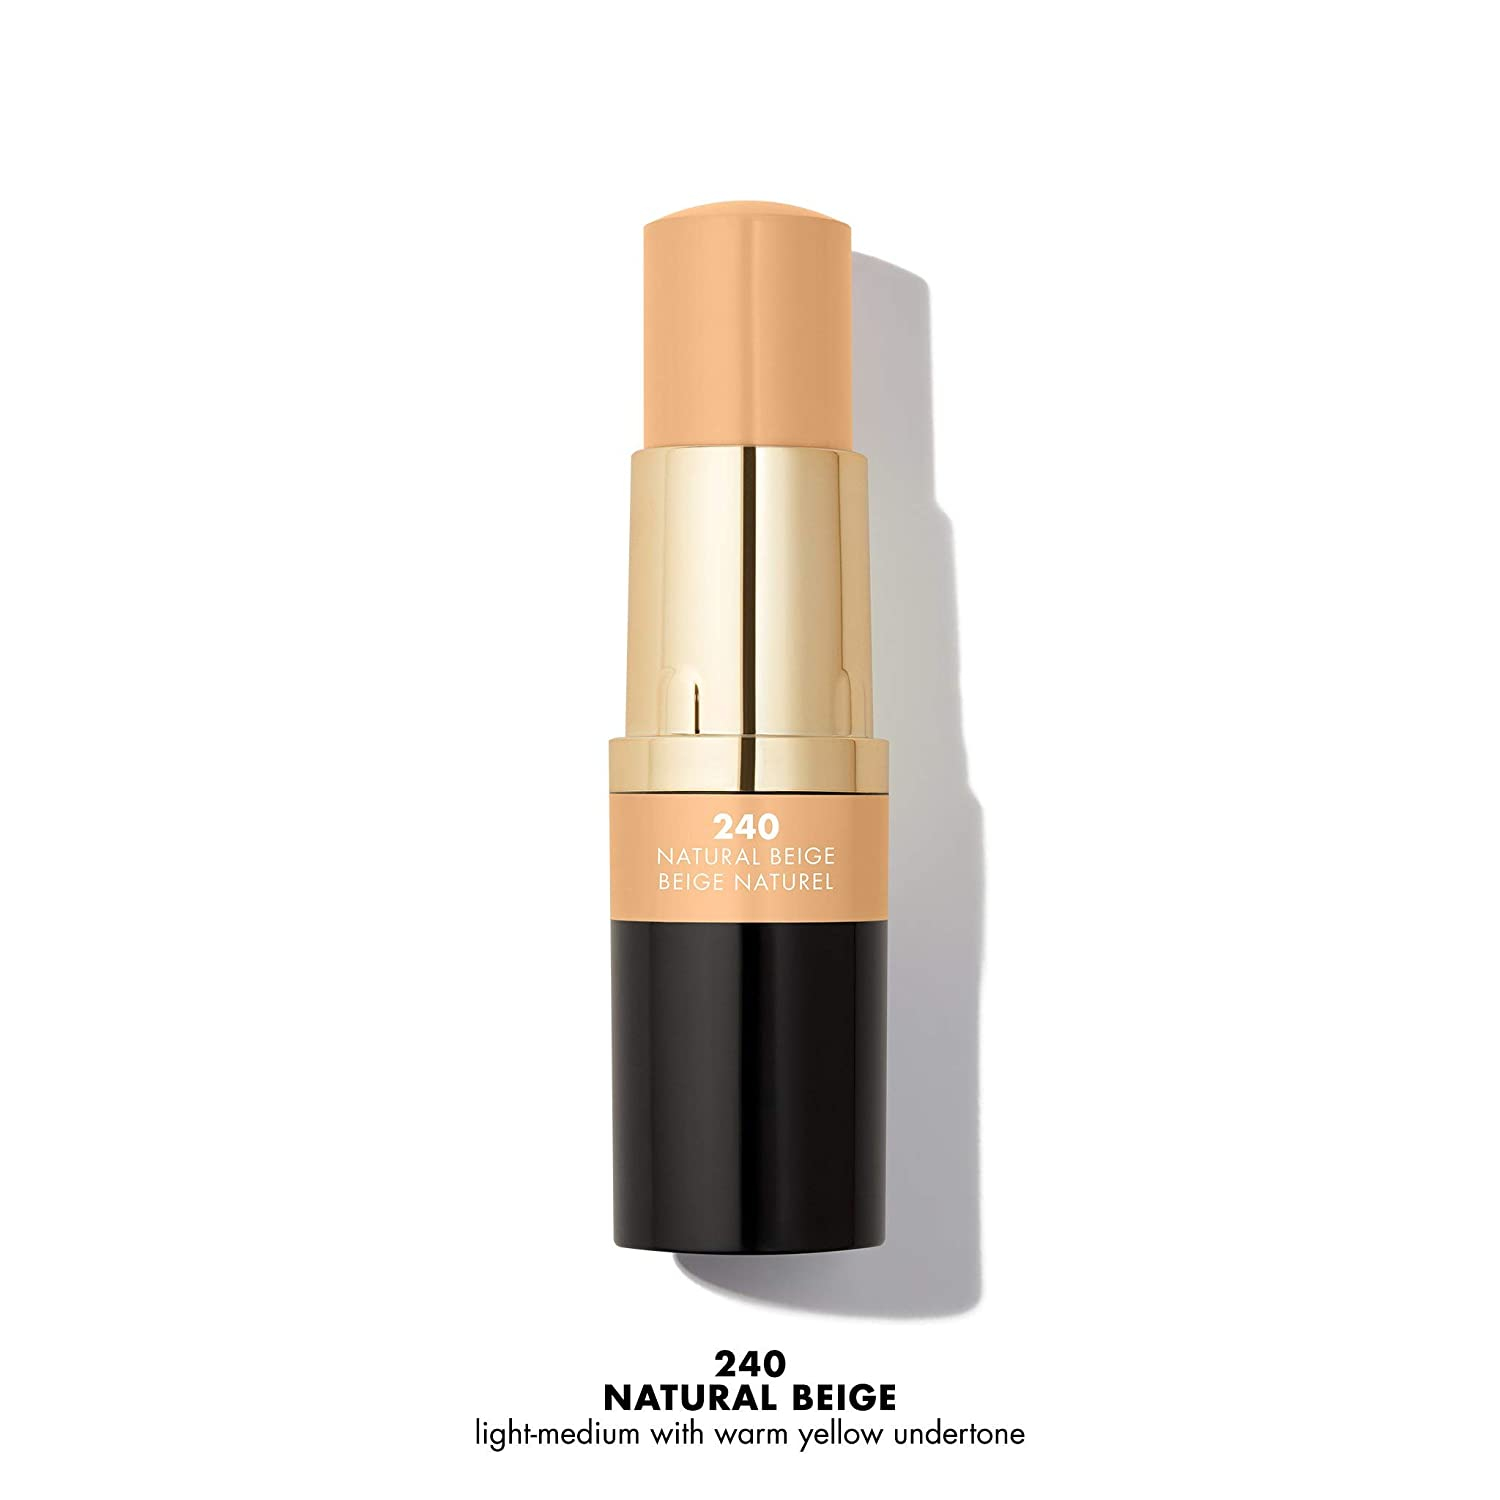 Milani Conceal + Perfect Foundation Stick - Warm Beige (0.46 Ounce) Vegan, Cruelty-Free Cream Foundation - Cover Under-Eye Circles, Blemishes & Skin Discoloration for a Flawless Finish